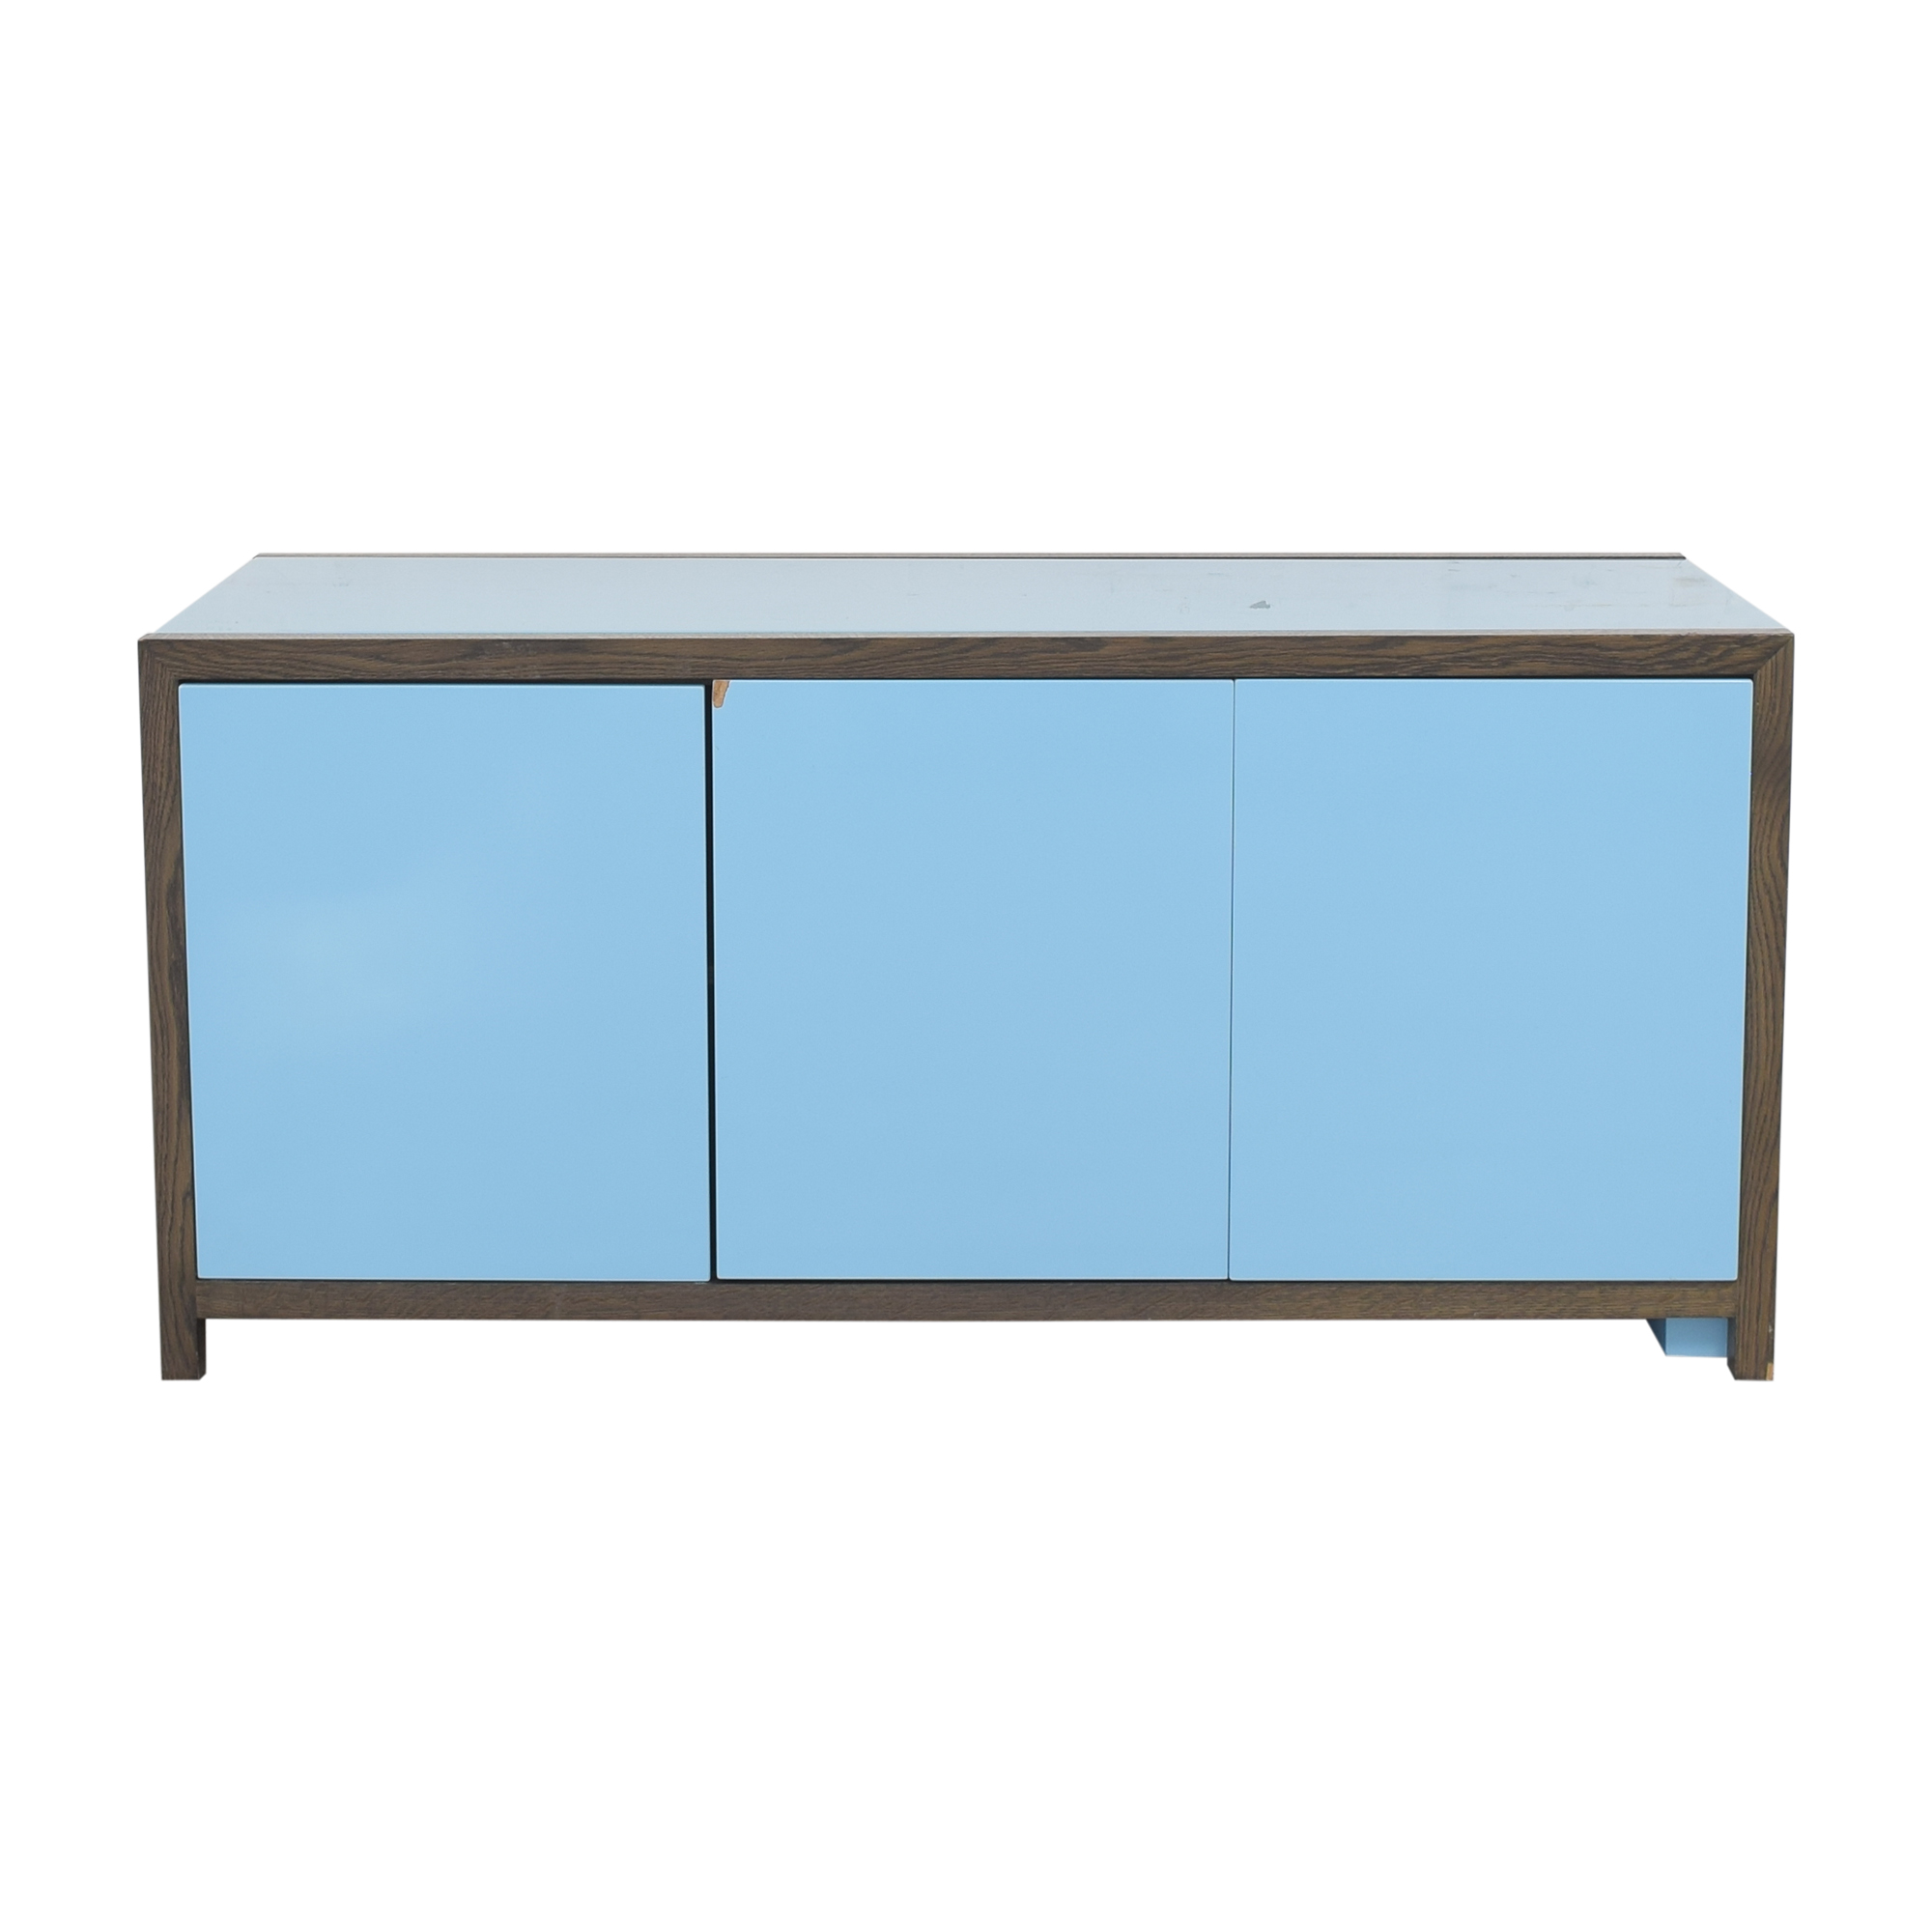 Dune Lemans Sideboard with Extendable Desk / Storage